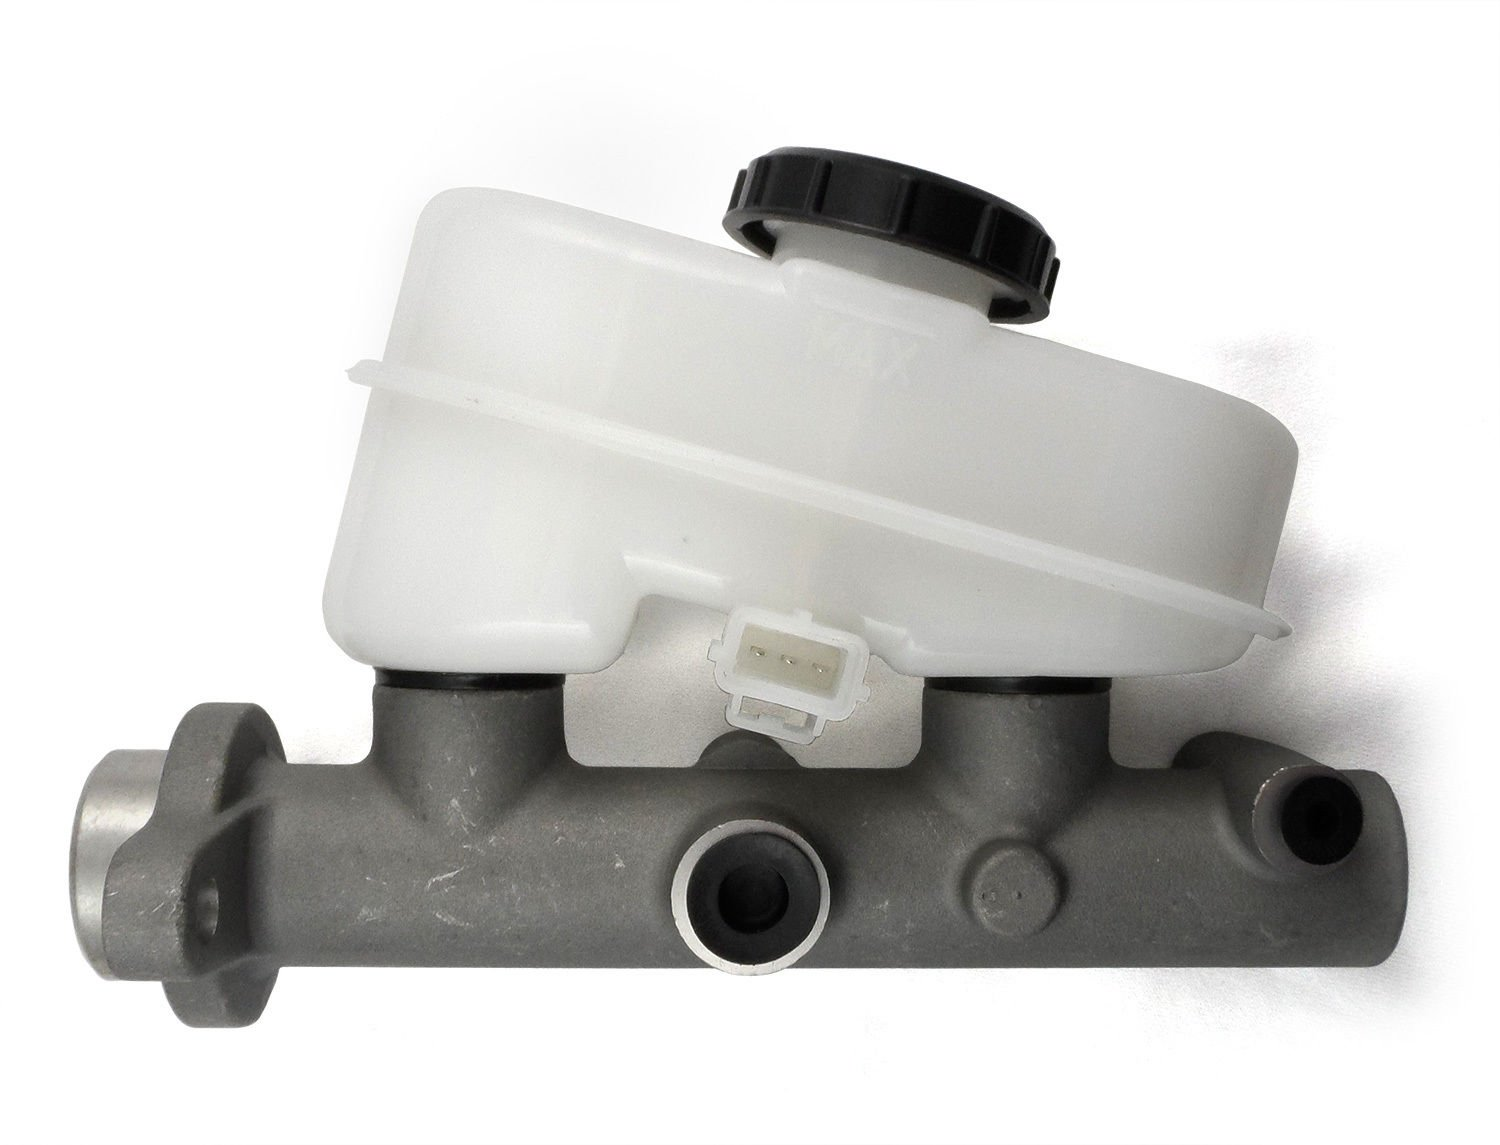 Brake Master Cylinder For Lincoln Town Car 1997 2000 1948 Ford Mc390445 Automotive